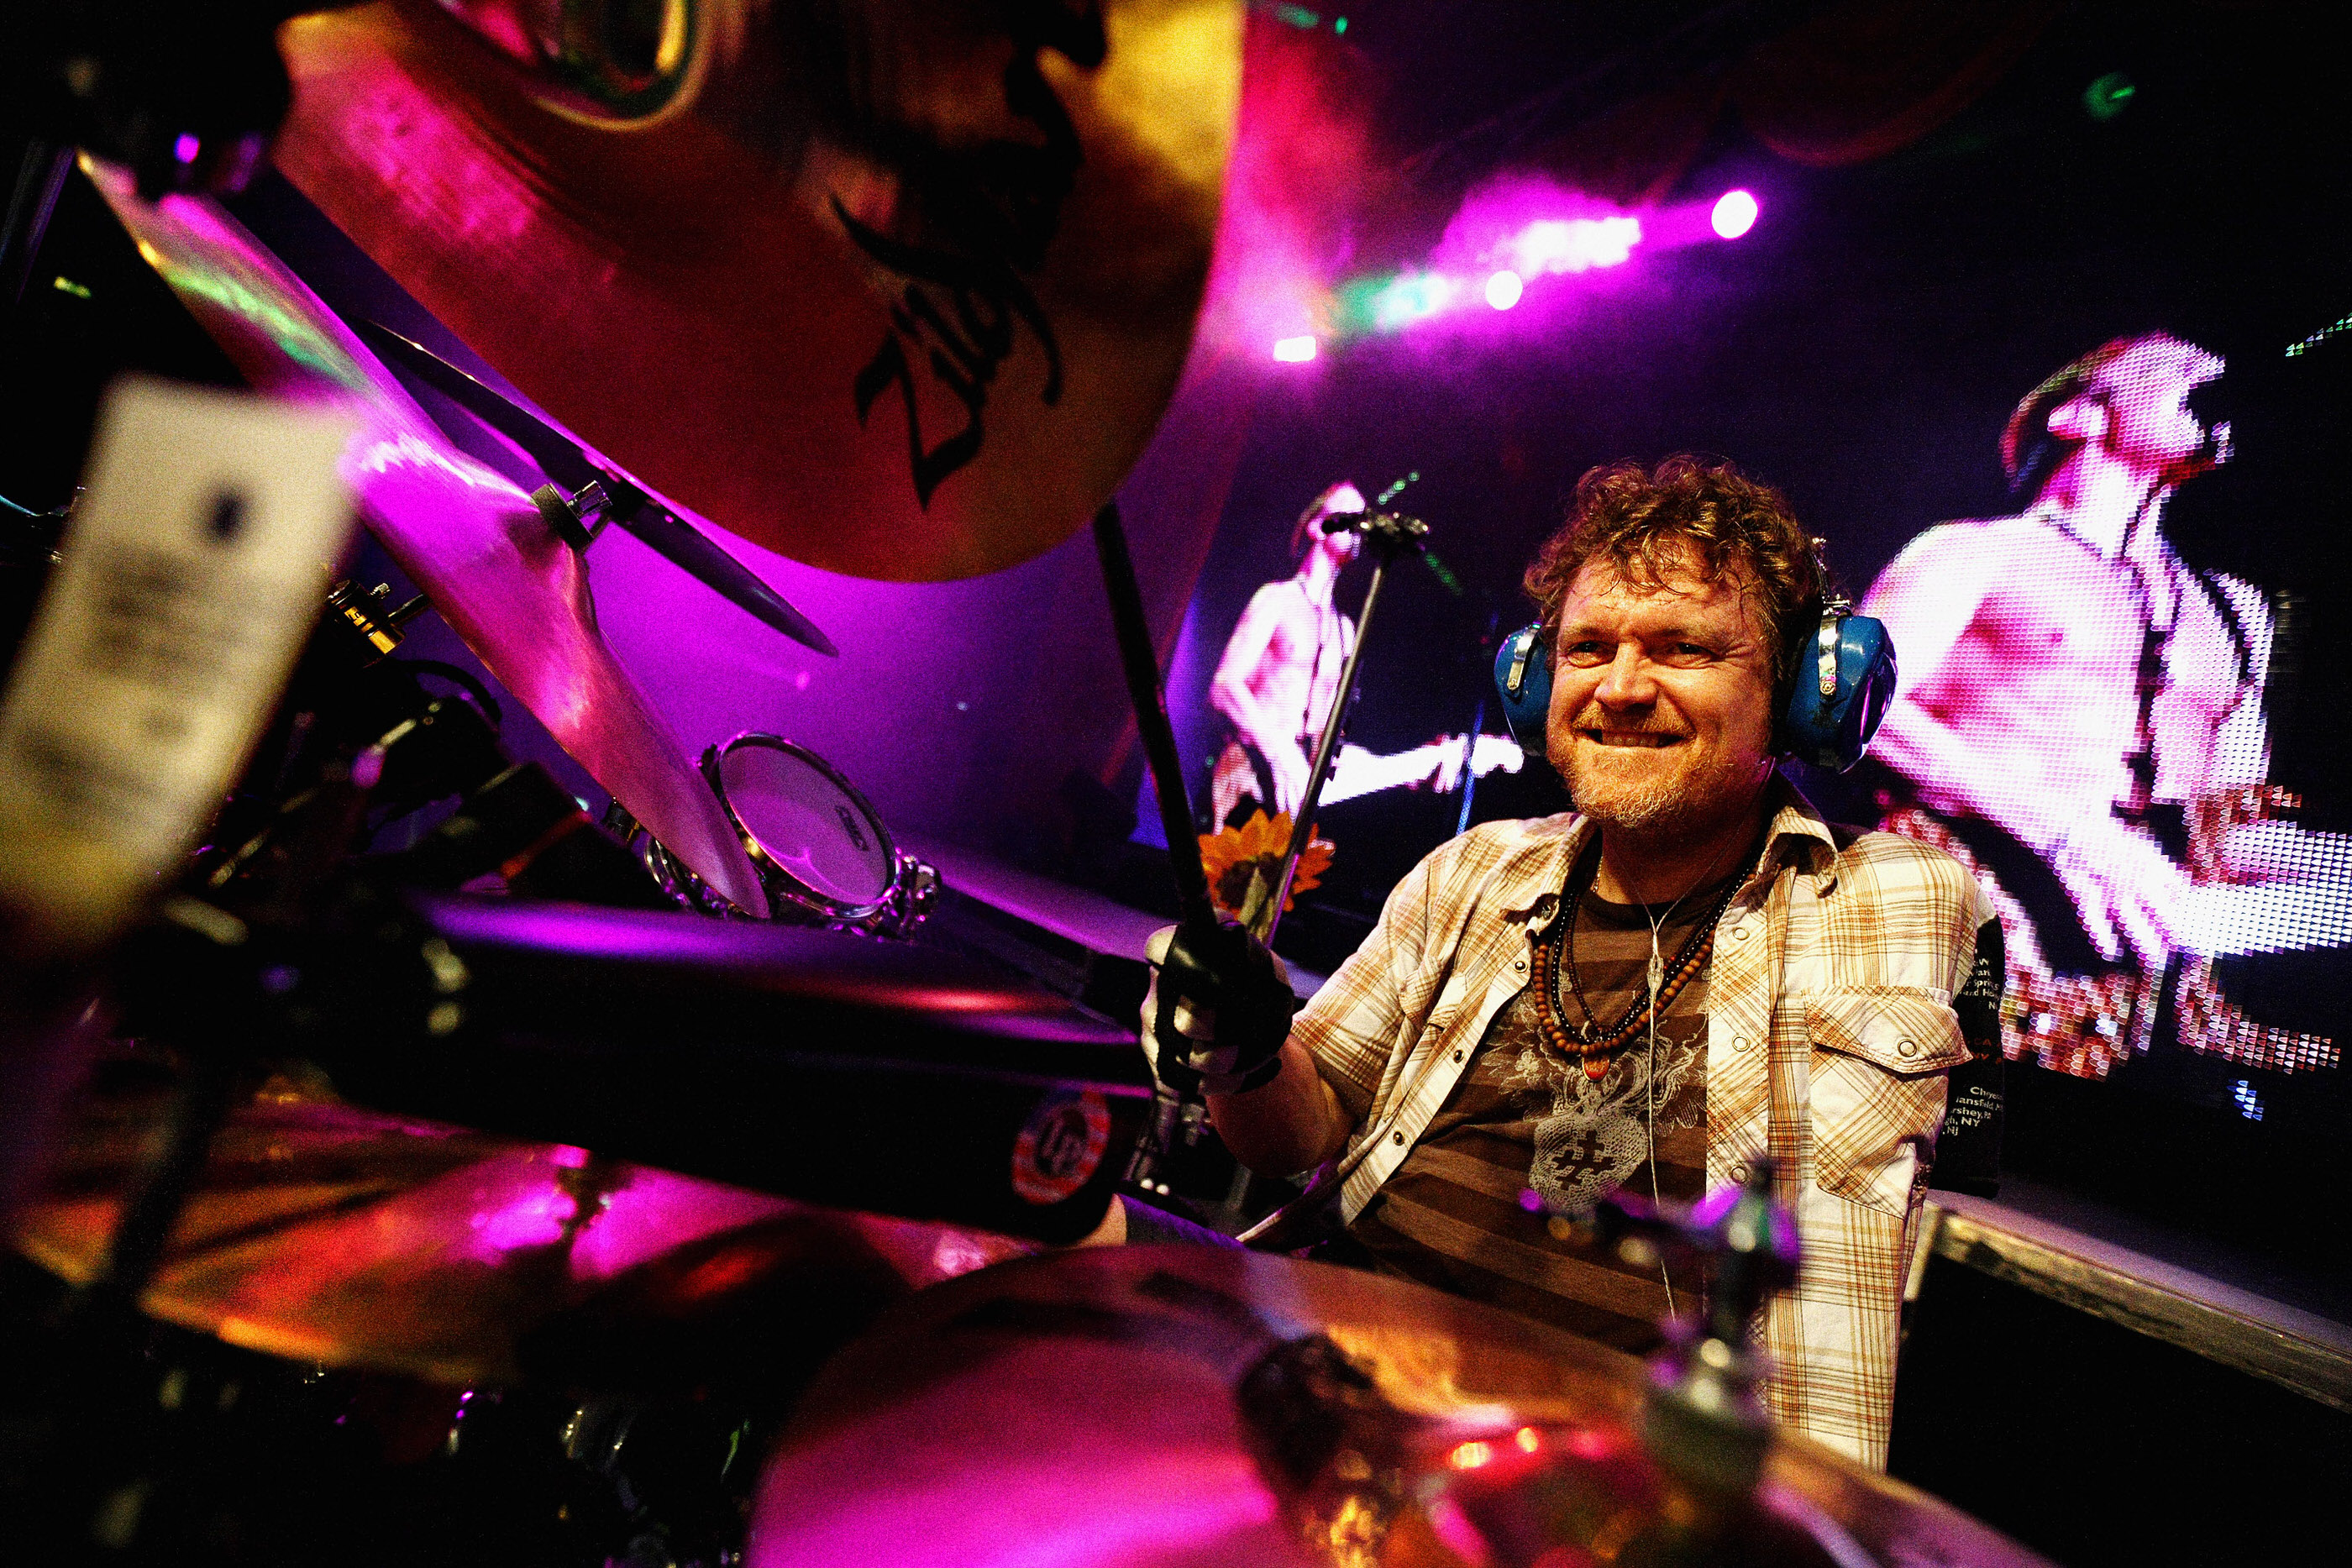 Rick Allen Def Leppard London by Ash Newell